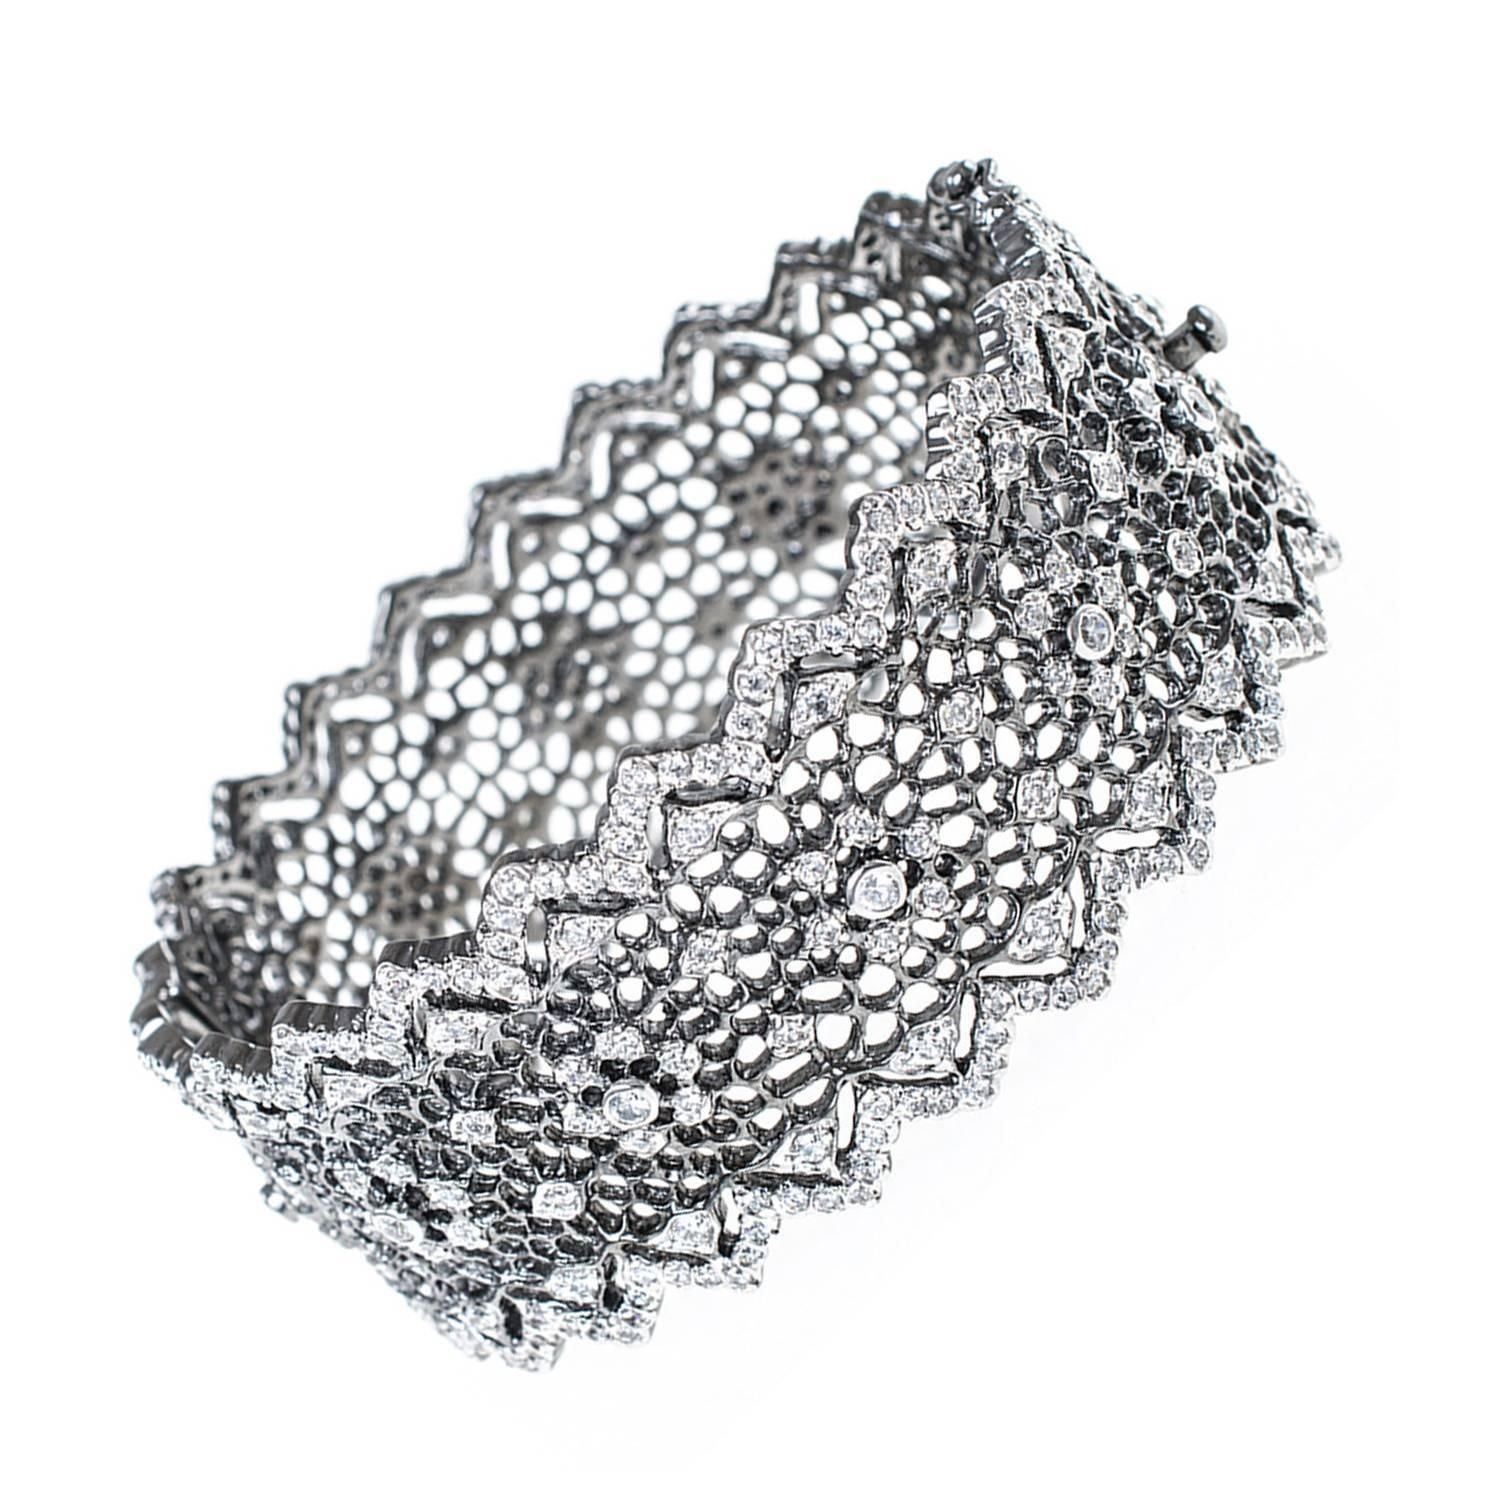 Rhodium & Cubic Zirconia Hinged Bangle | From a unique collection of vintage bangles at https://www.1stdibs.com/jewelry/bracelets/bangles/